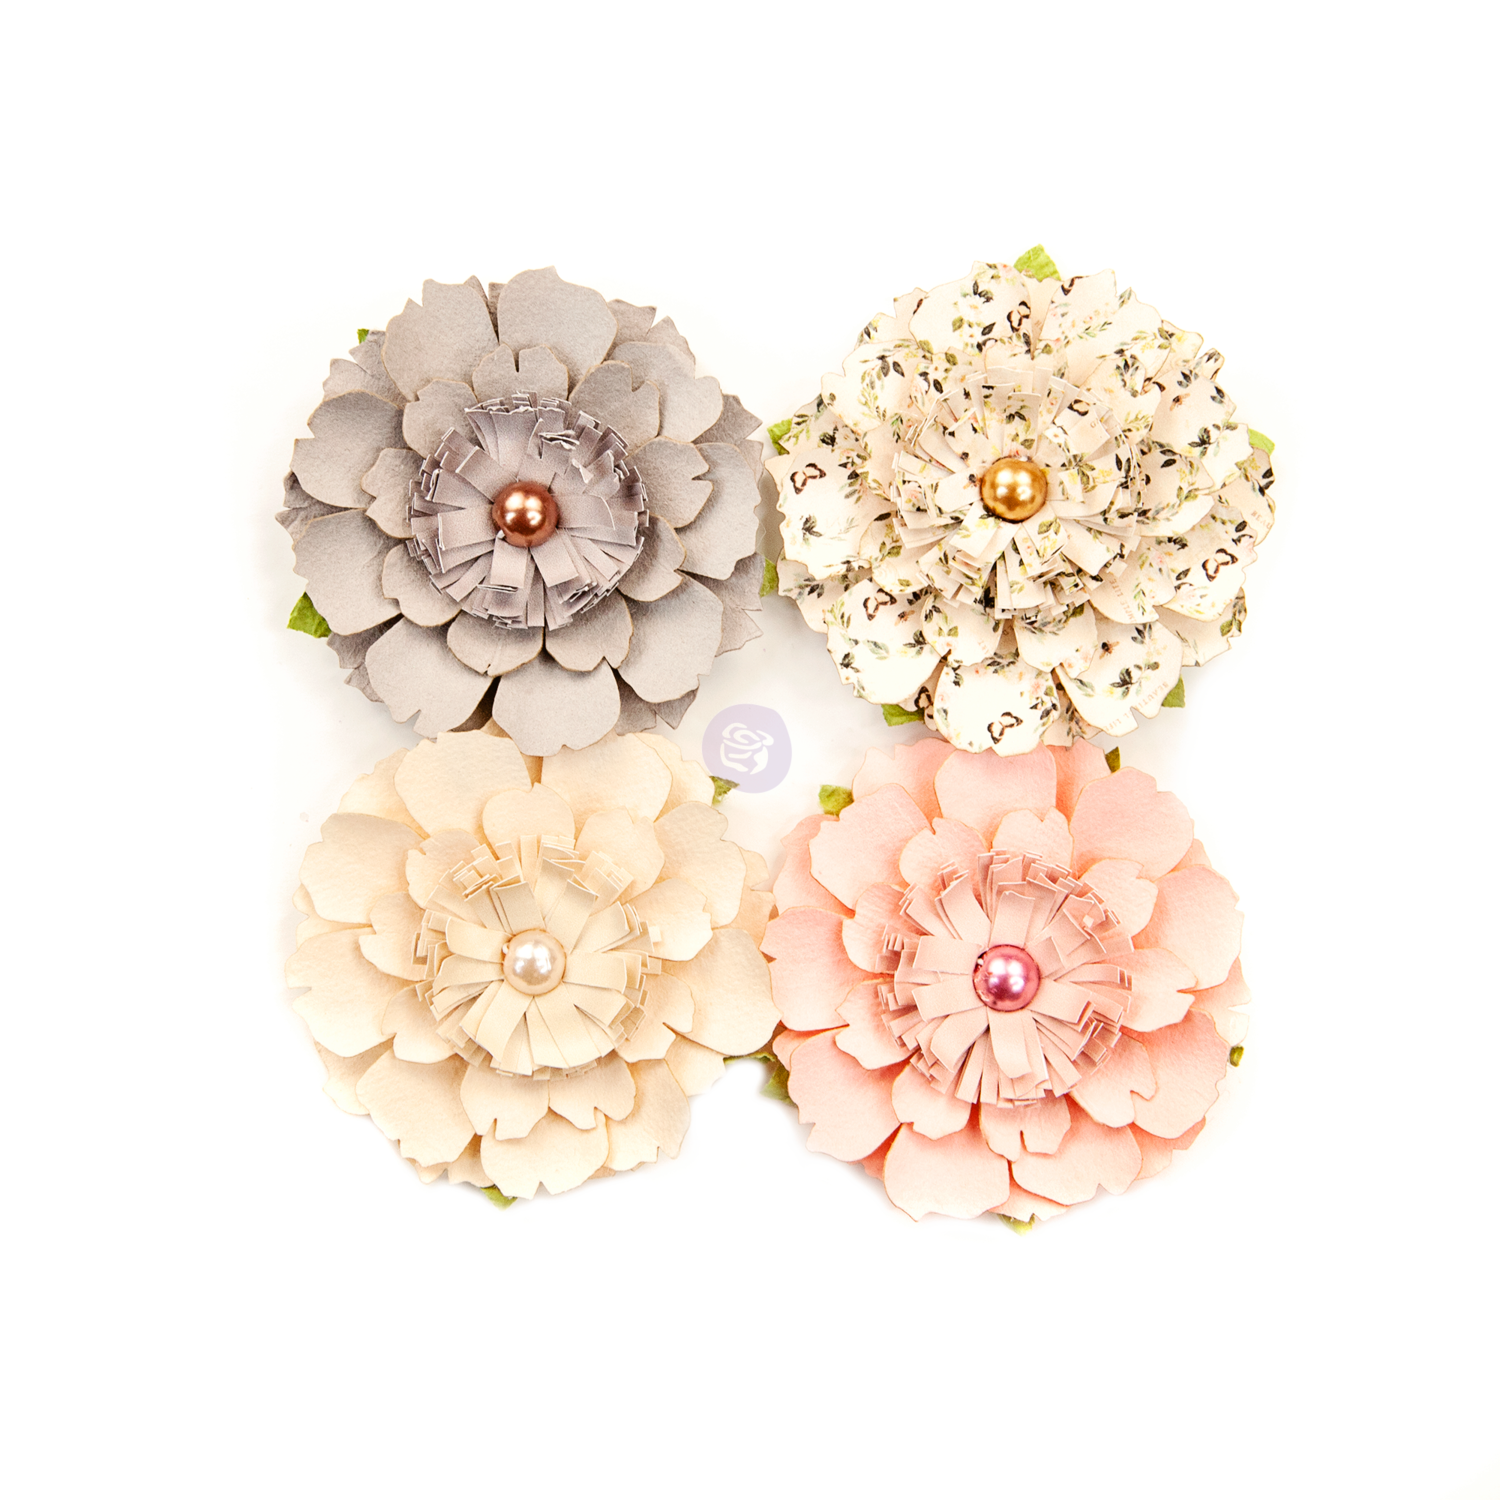 Heart and Home - Spring Farmhouse Flowers - Prima